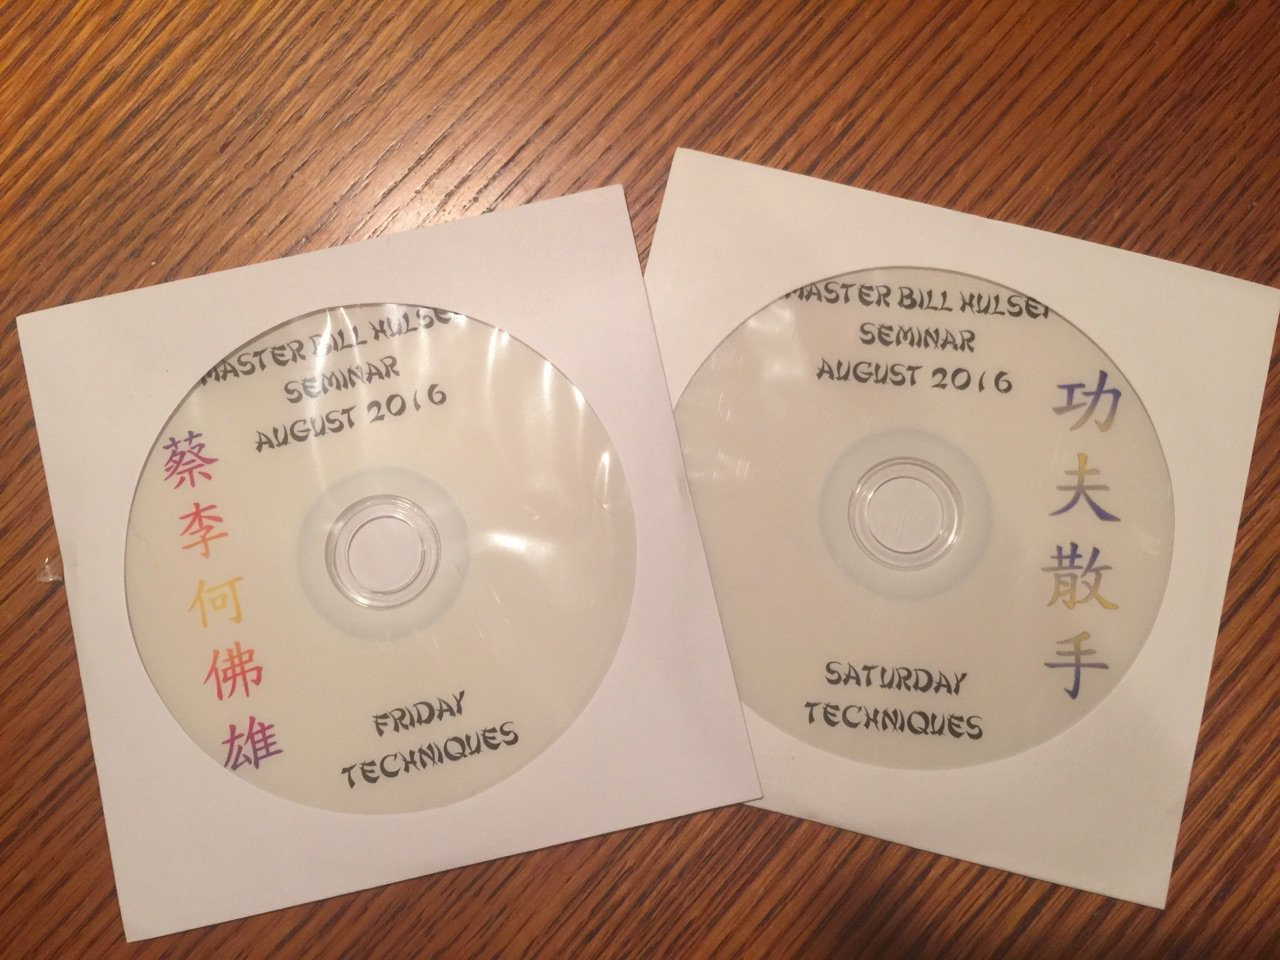 2016 Seminar DVDs for those who attended.